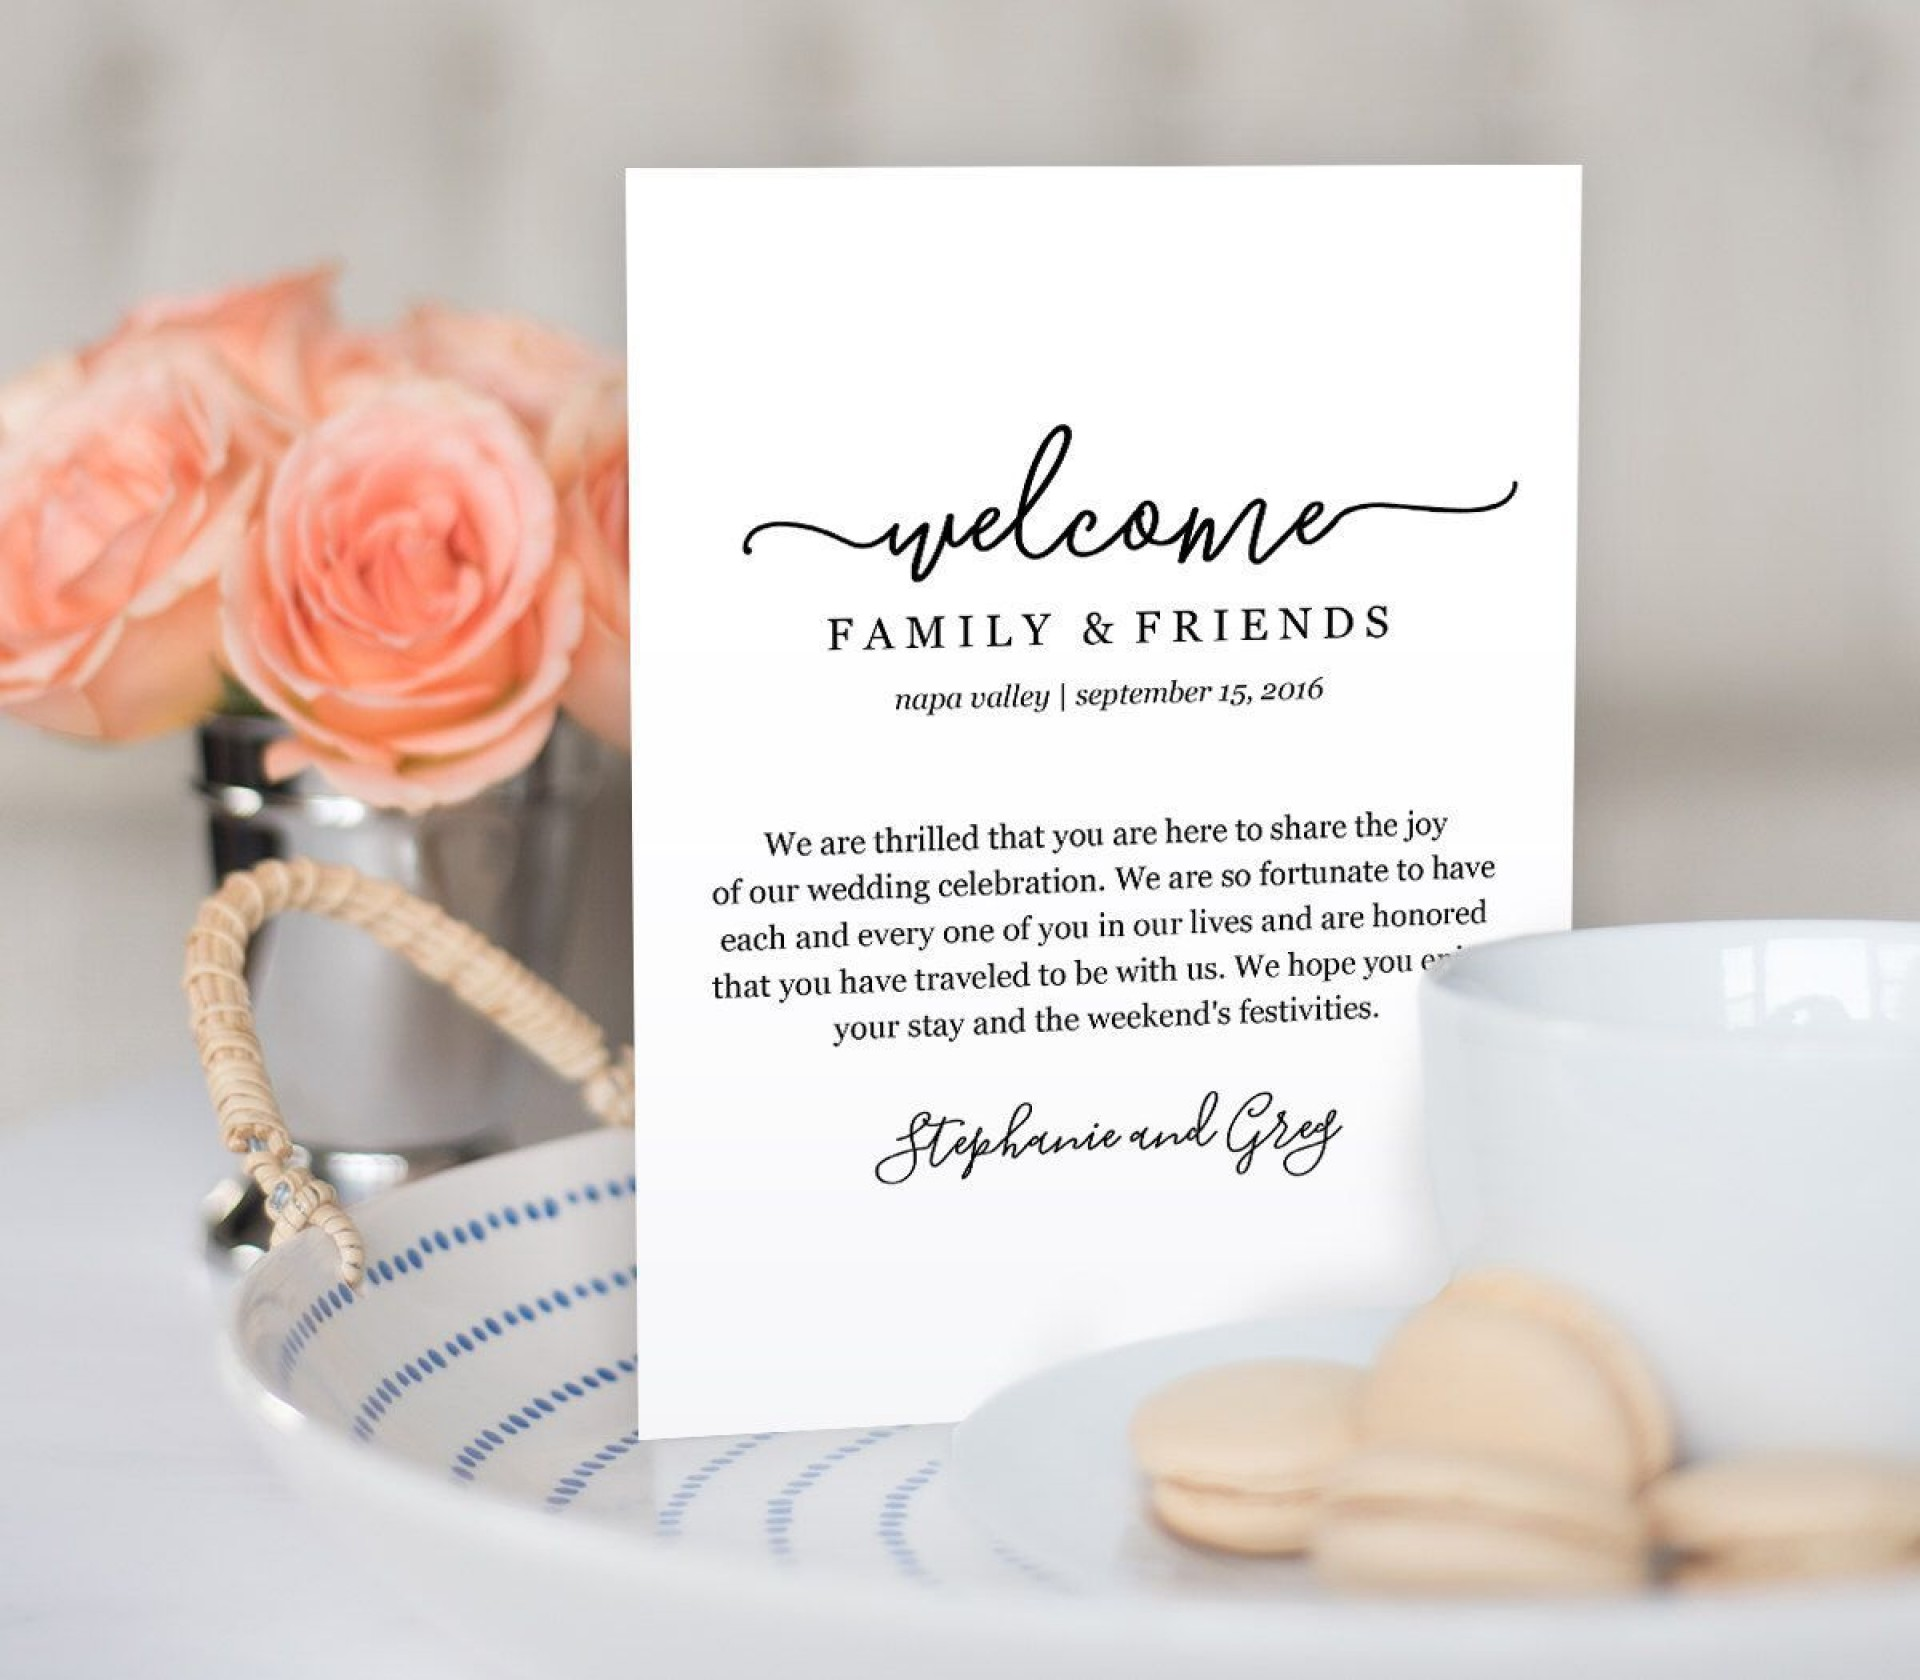 001 Impressive Cruise Wedding Welcome Letter Template Image 1920